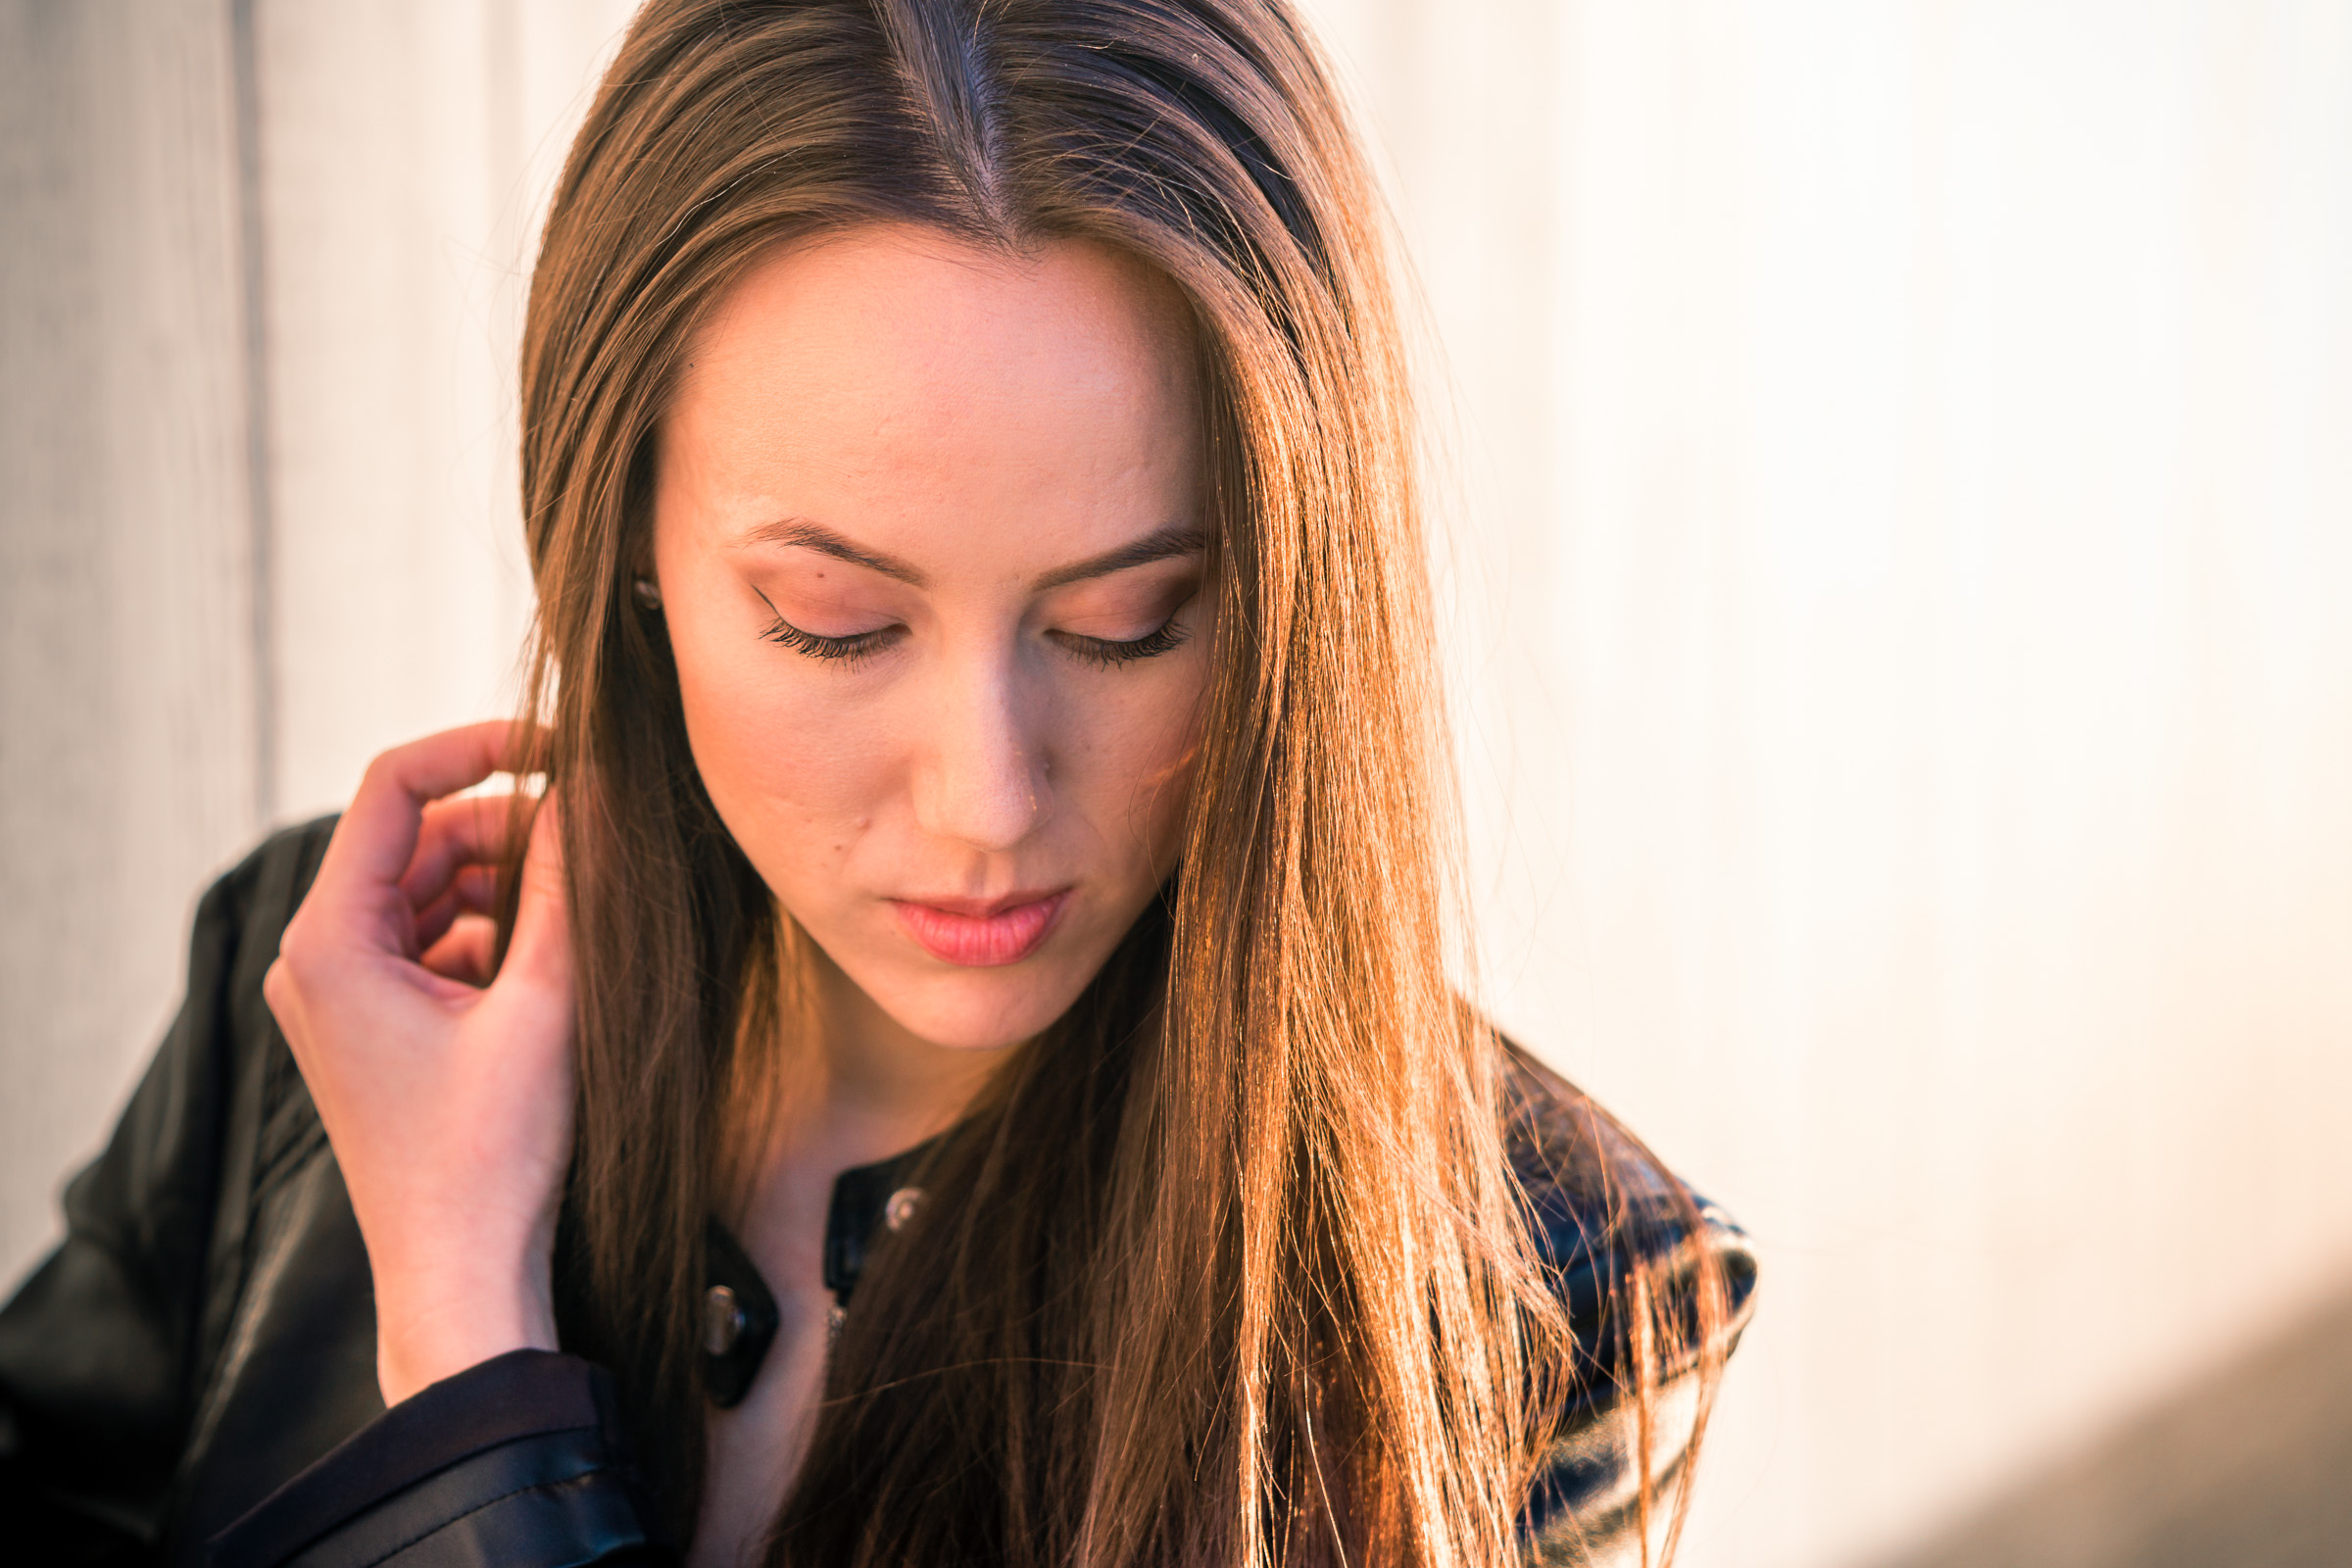 Natural light Fashion Portrait of female model wearing black leather jacket and blue jeans taken during Golden hour At Balboa Pierin Newport Beach